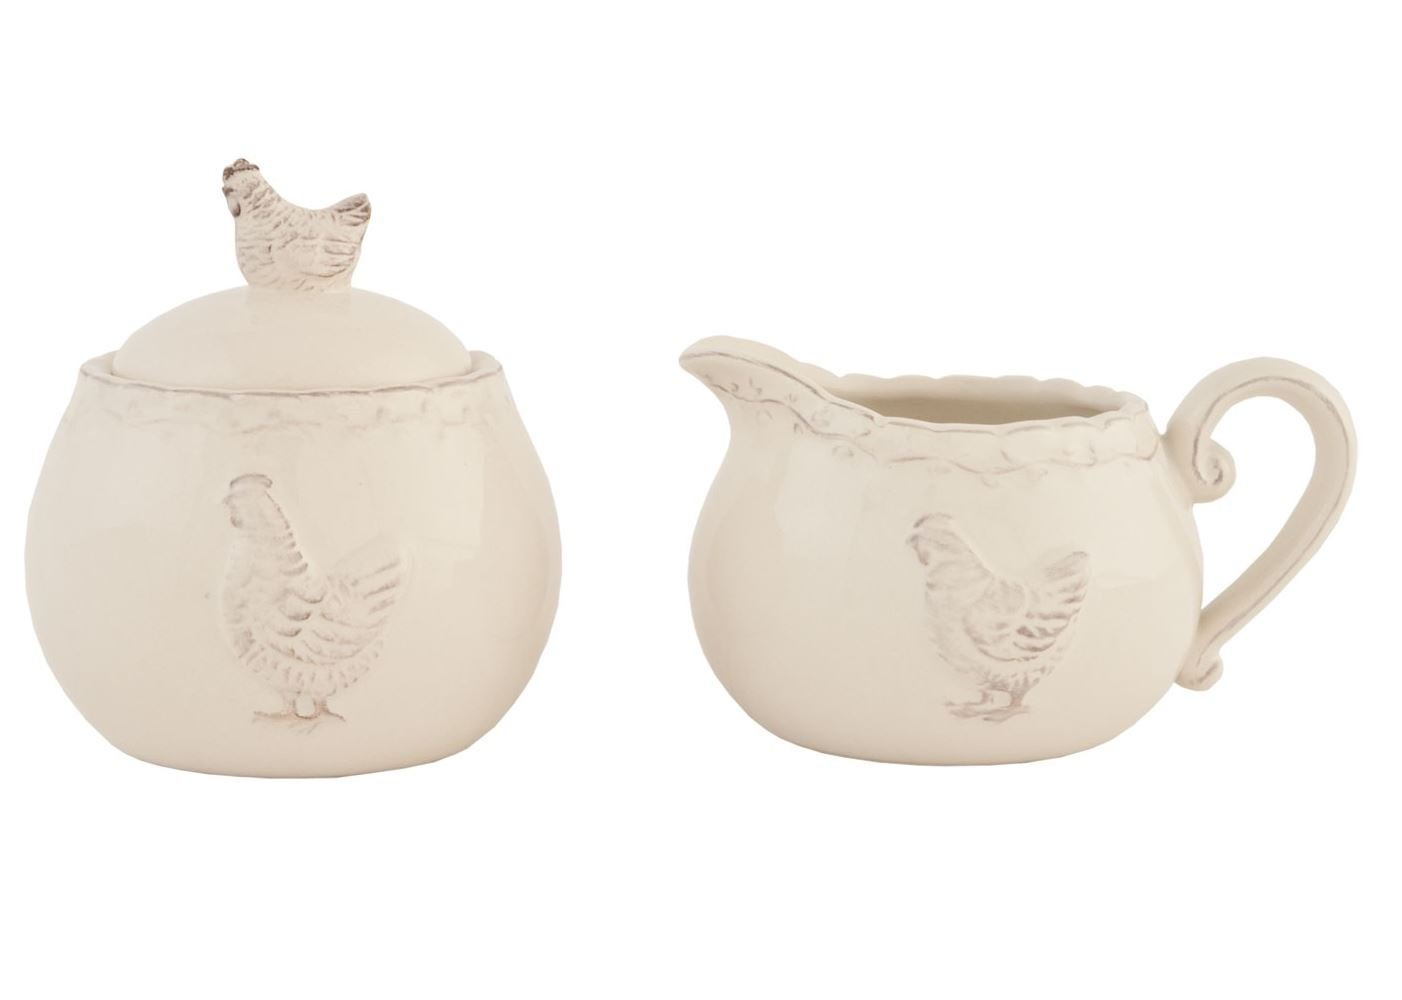 LUXURY NORDIC CHICKEN HEN SUGAR BOWL MILK JUG PORCELAIN GLAZE CREAM HEATHER Kitchen Unique